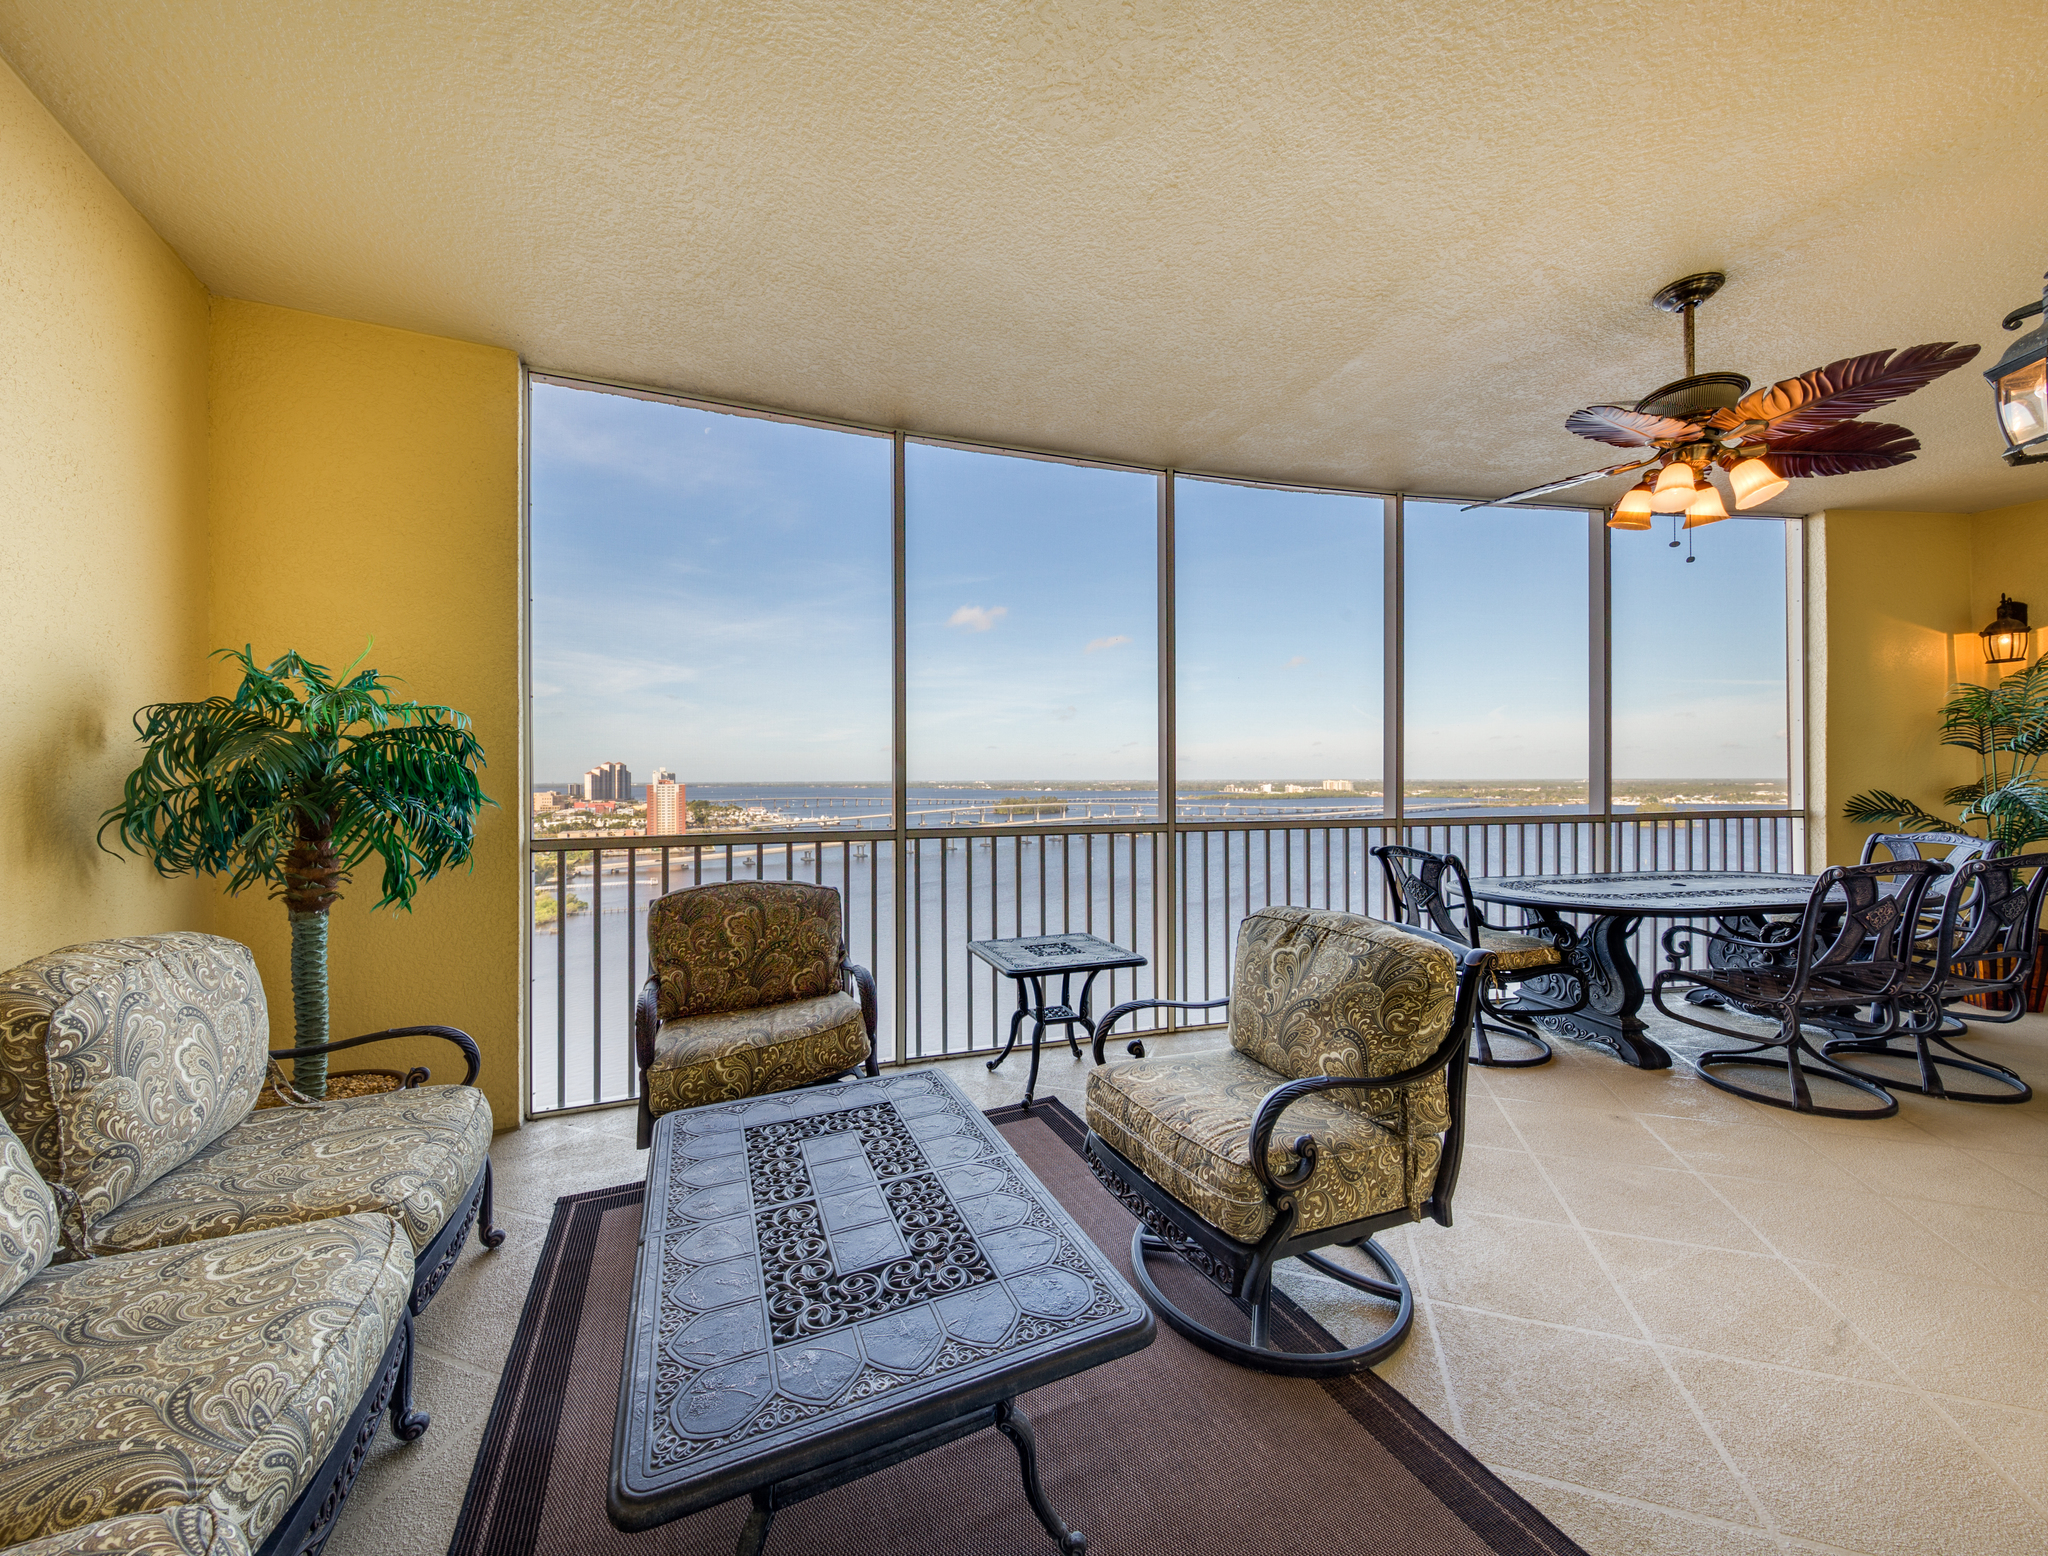 A view overlooking the Caloosahatchee River from a luxury home high-rise in Cape Coral, FL.